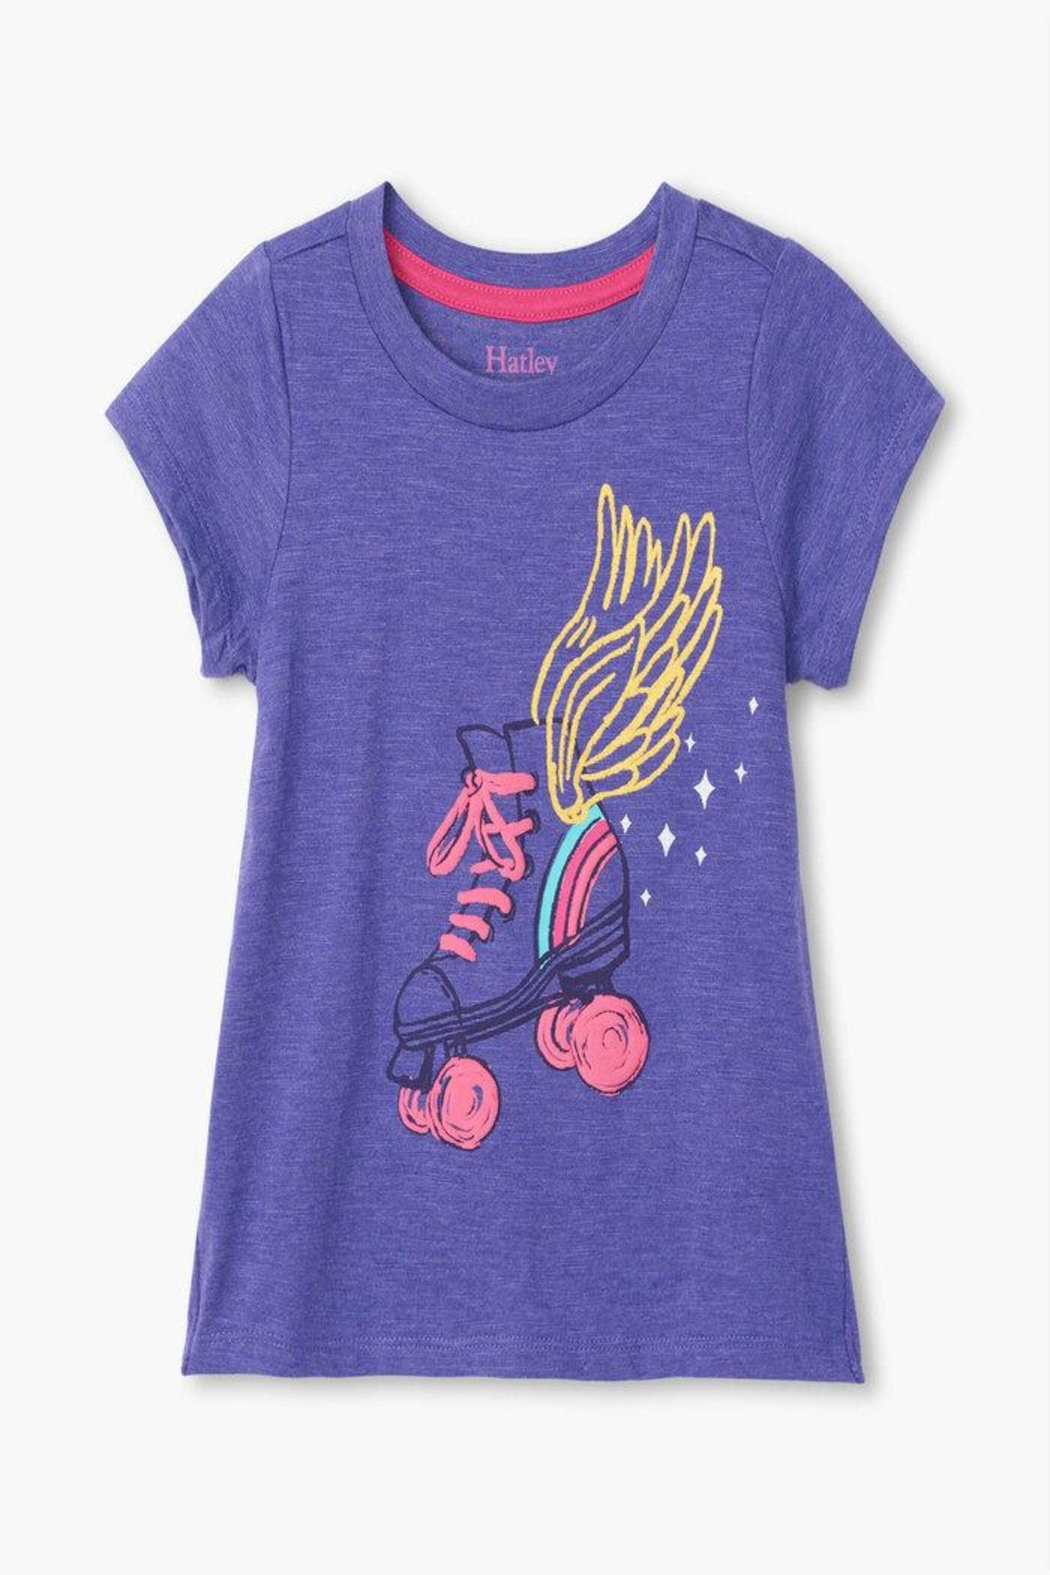 Hatley Roller-Girl Tie Back-Tee - Front Cropped Image